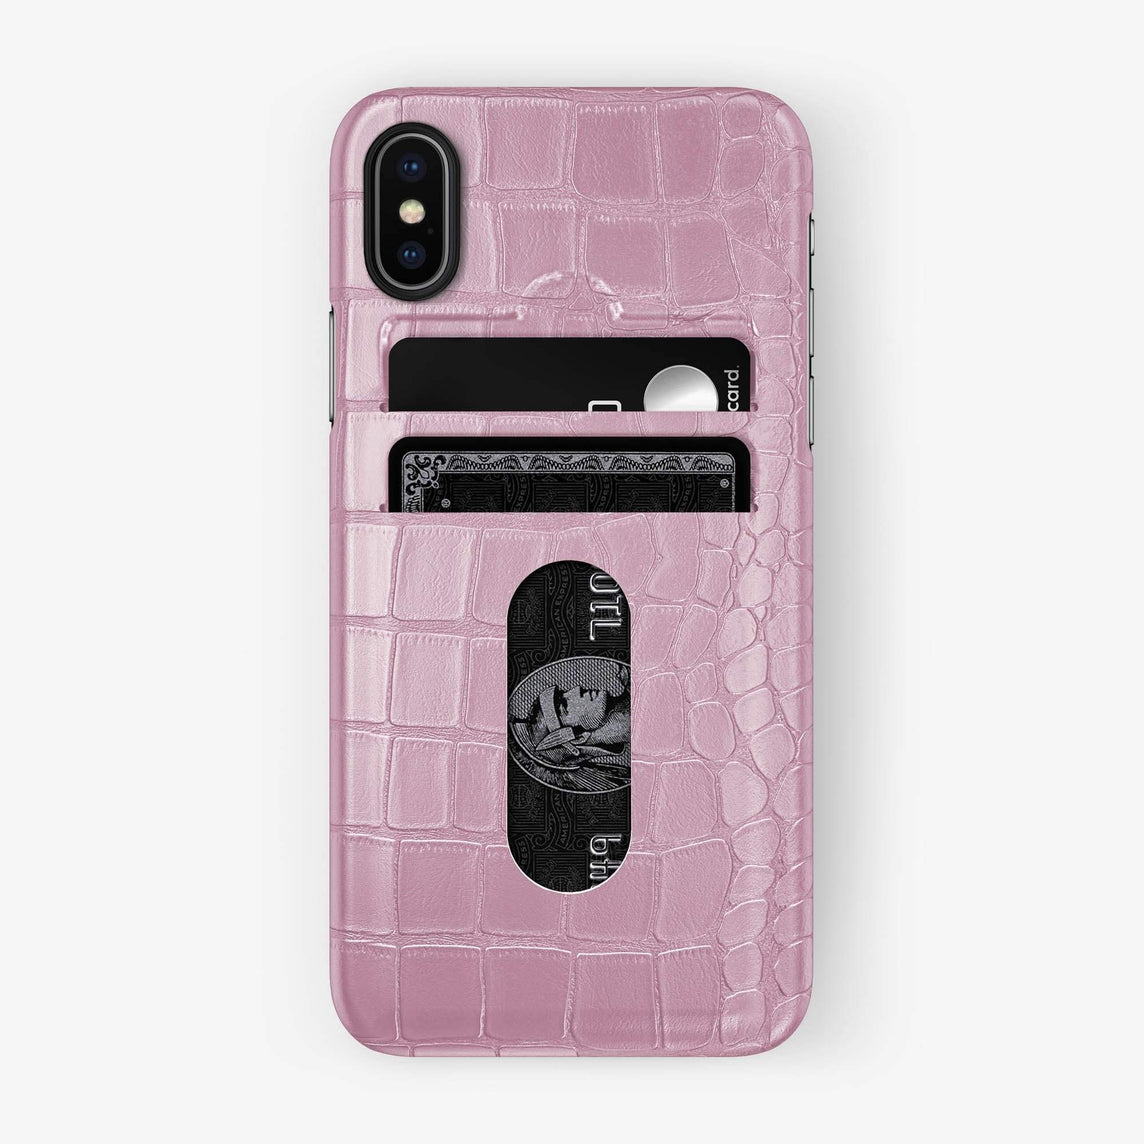 Alligator Card Holder Case iPhone Xs Max | Pink - Black